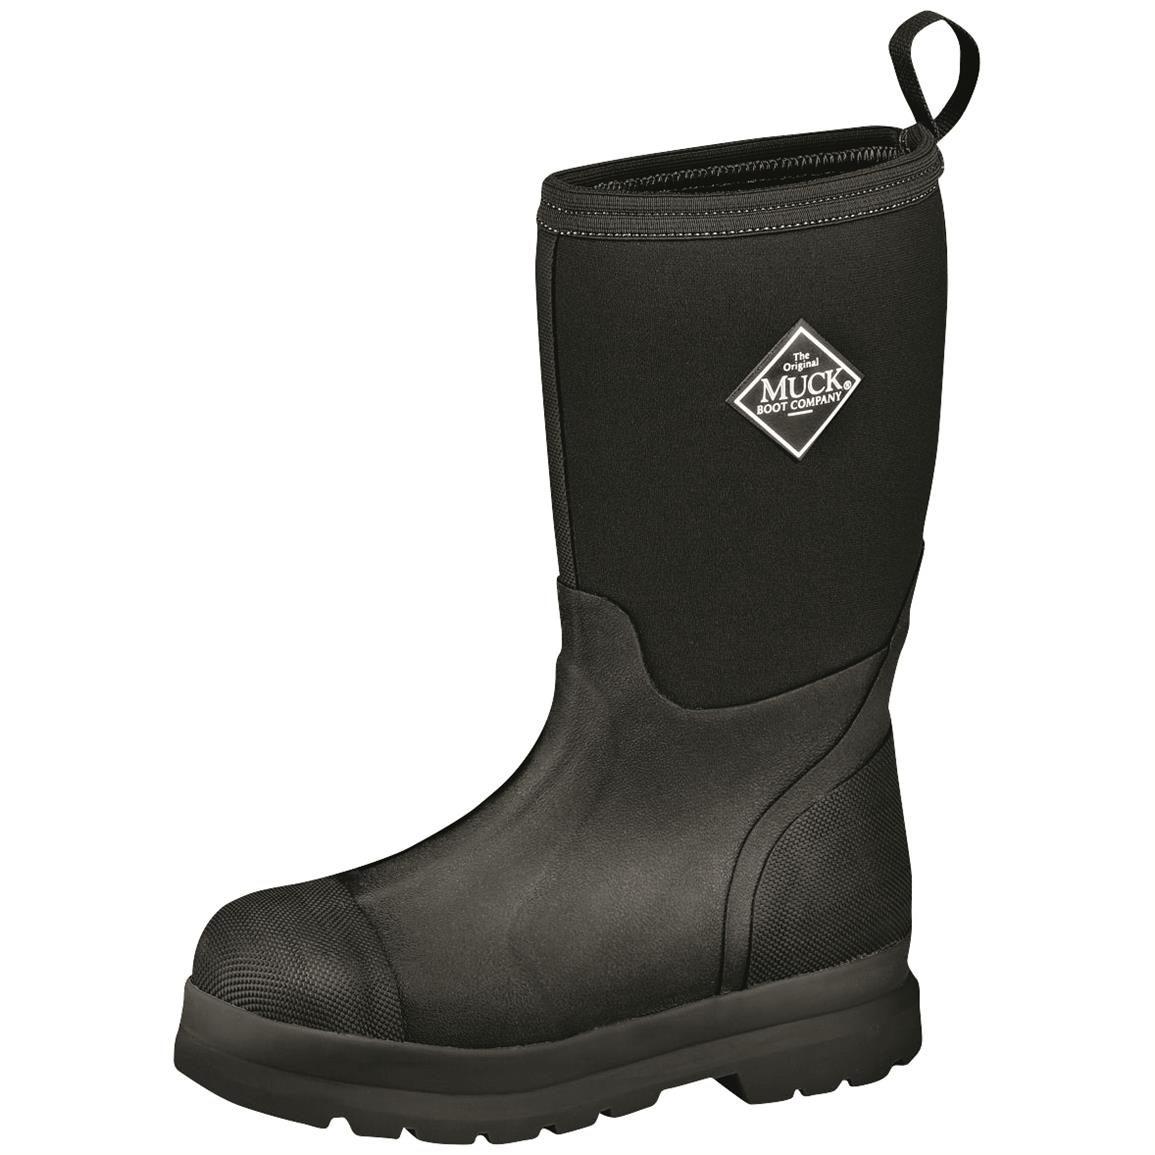 Muck Boot  Kids' Chore Waterproof  Boots, Black